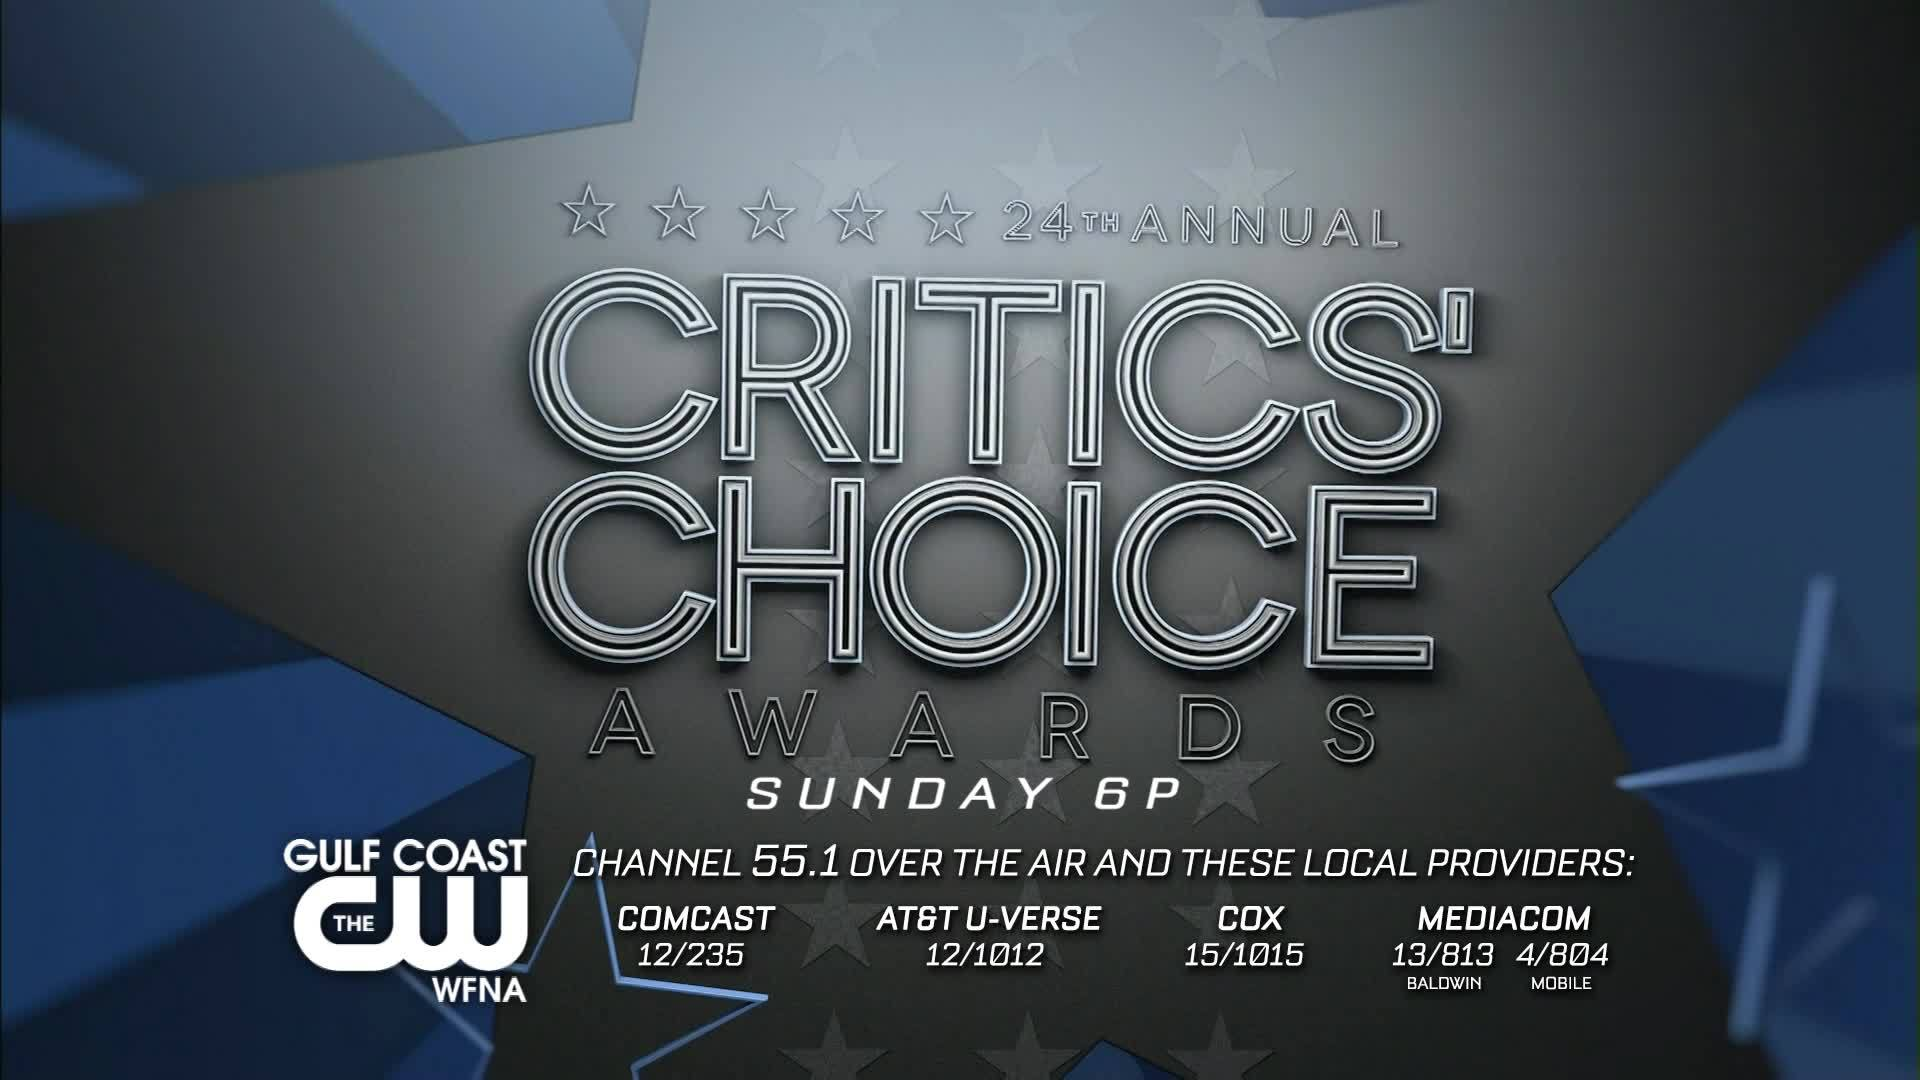 24th Annual Critics Choice Awards | Sunday on The Gulf Coast CW